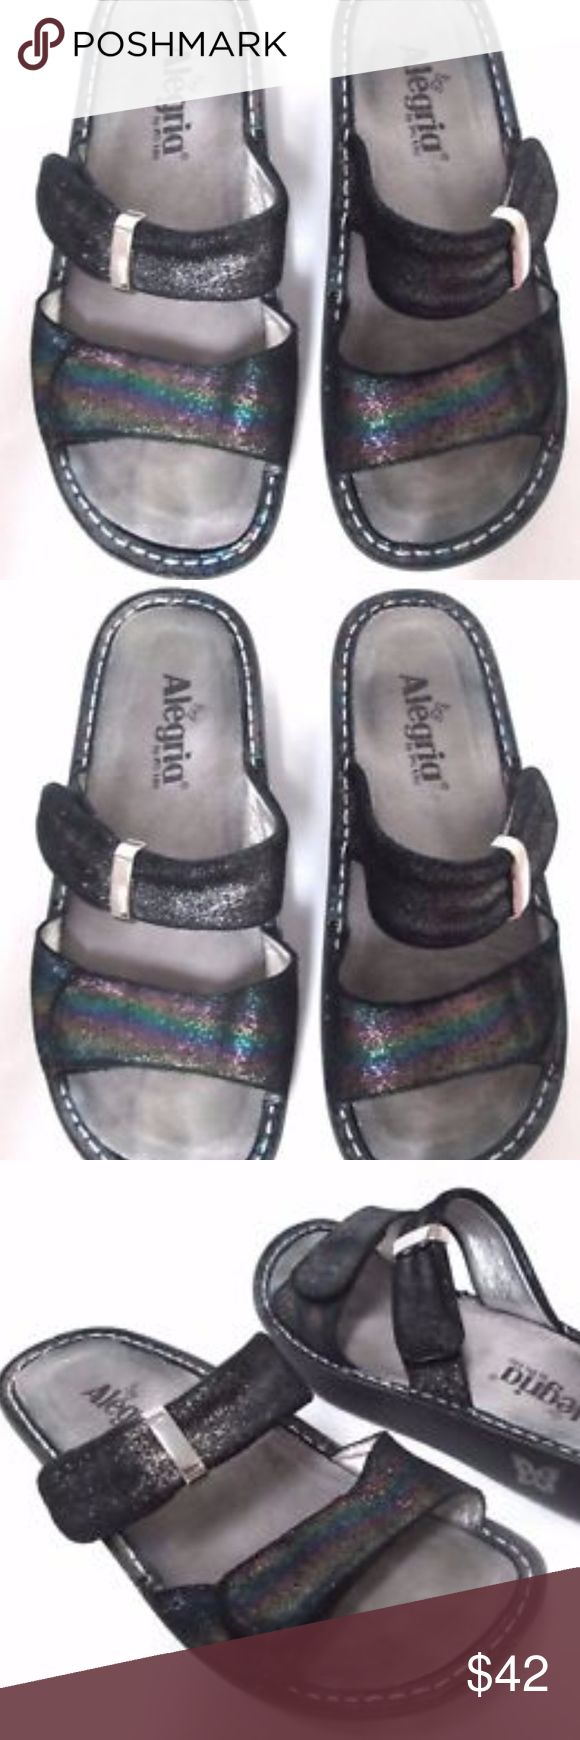 """Alegria Kar black shimmer leather slides sandals 7 Alegria sandals in excellent condition. Size 7, leather, heel is 1.2"""". Pet and smoke free home. Alegria Shoes Sandals"""